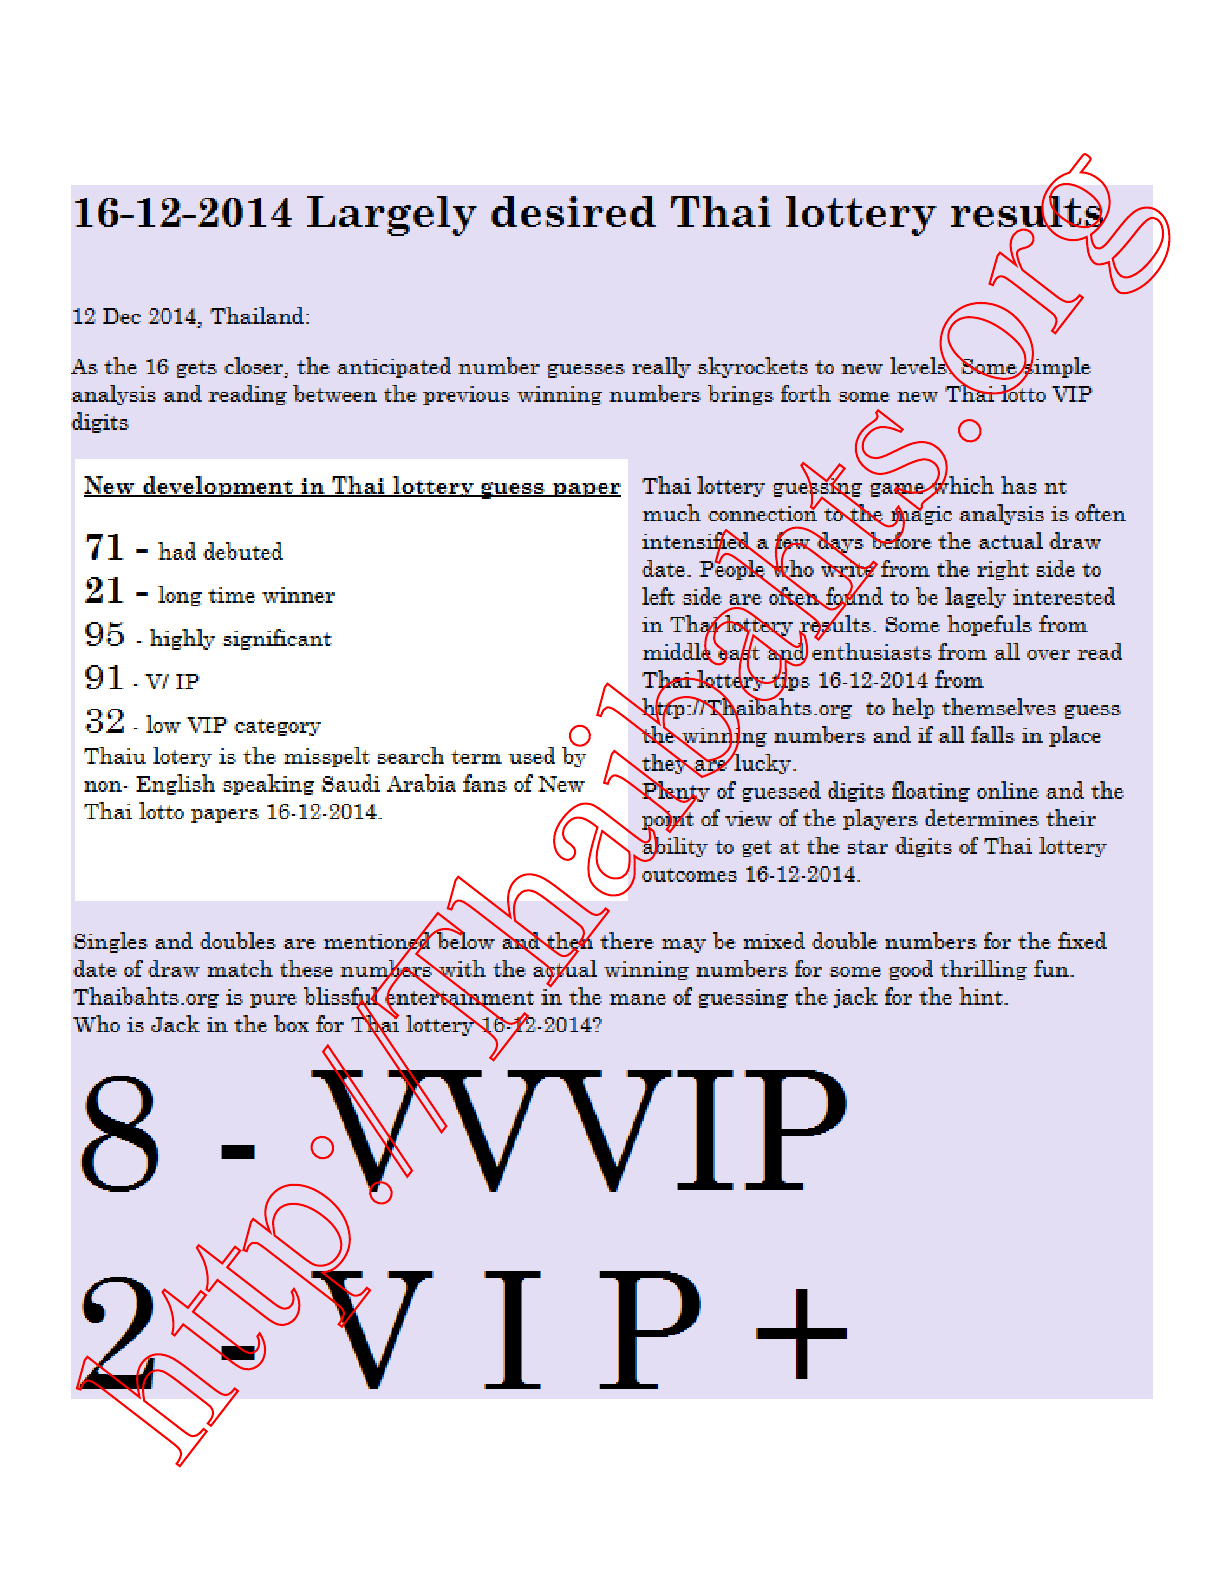 New Thai lottery article for 16-12-2014 results good reviews